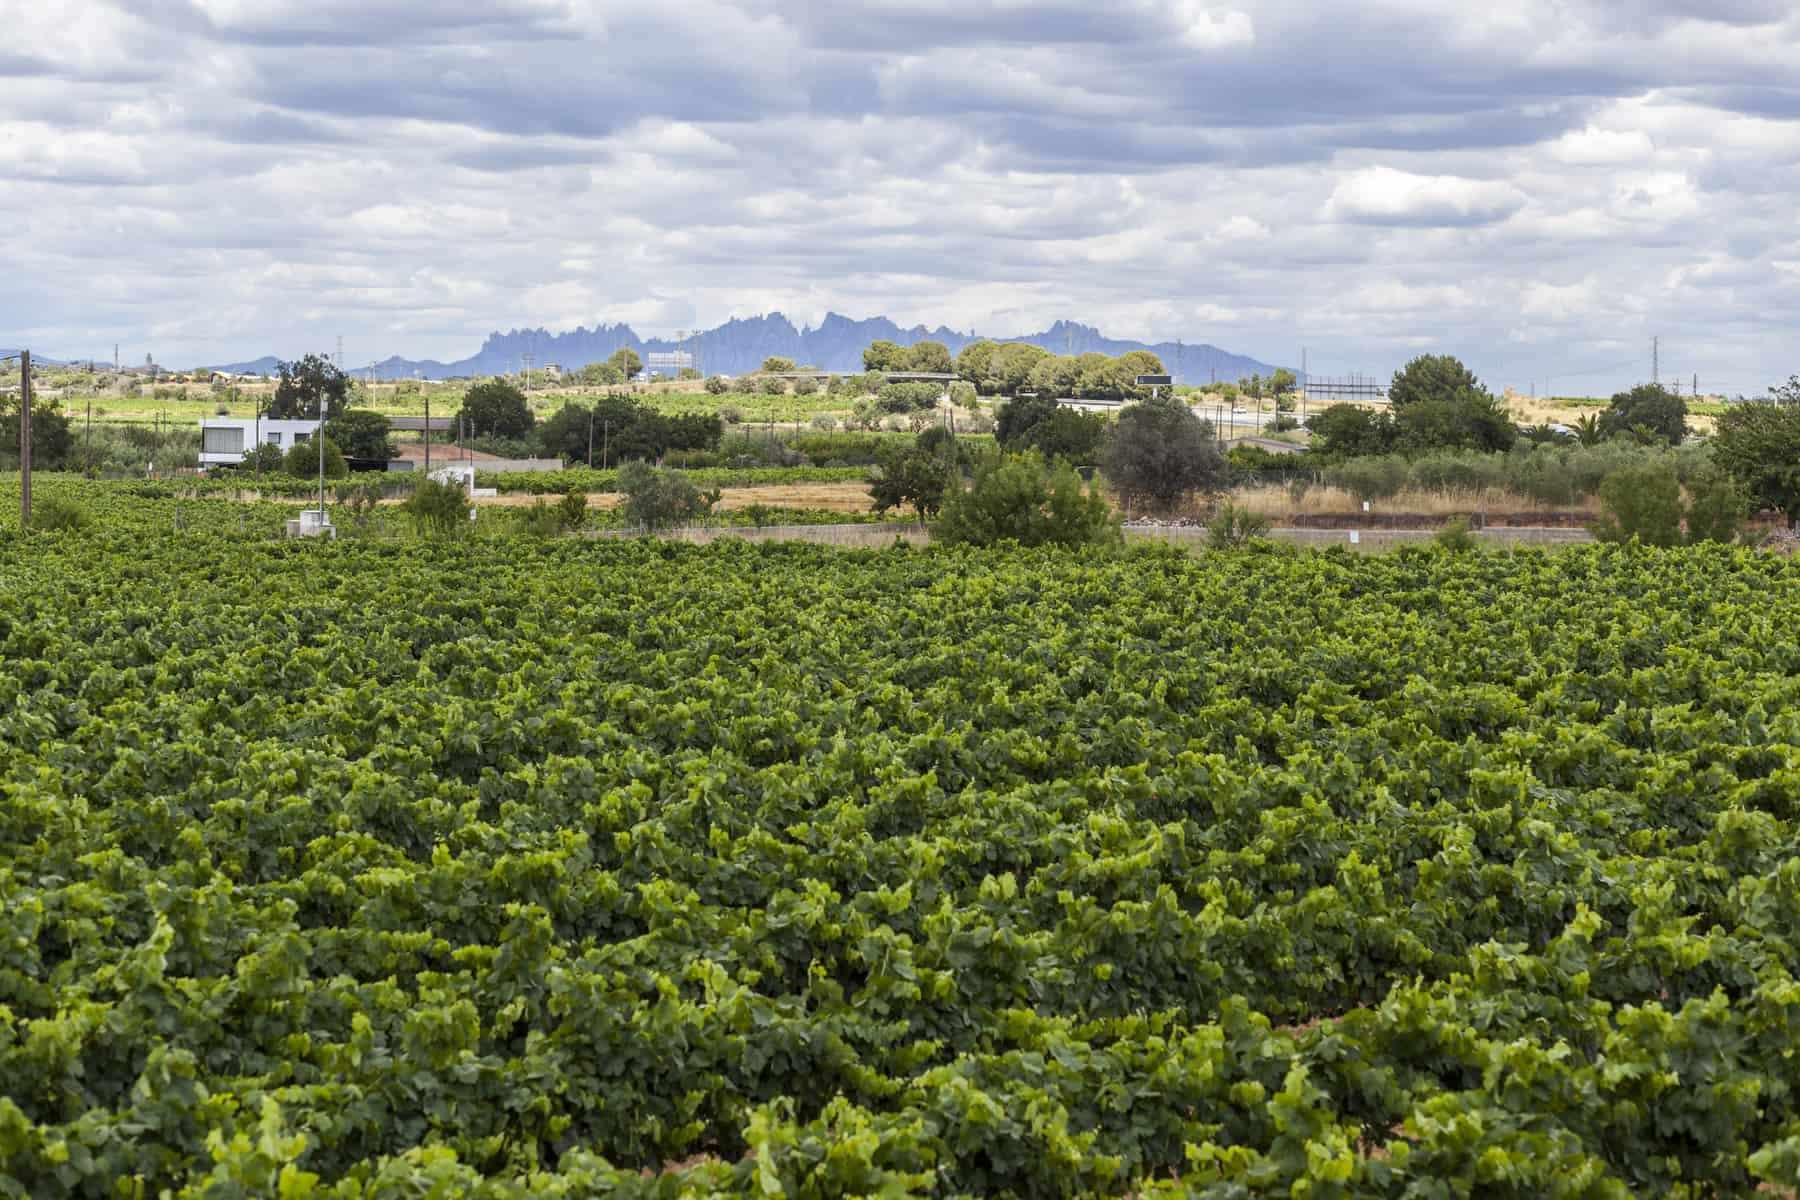 Penedes wine cava region,at background Montserrat mountain. Vilafranca del Penedes, Catalonia,Spain.